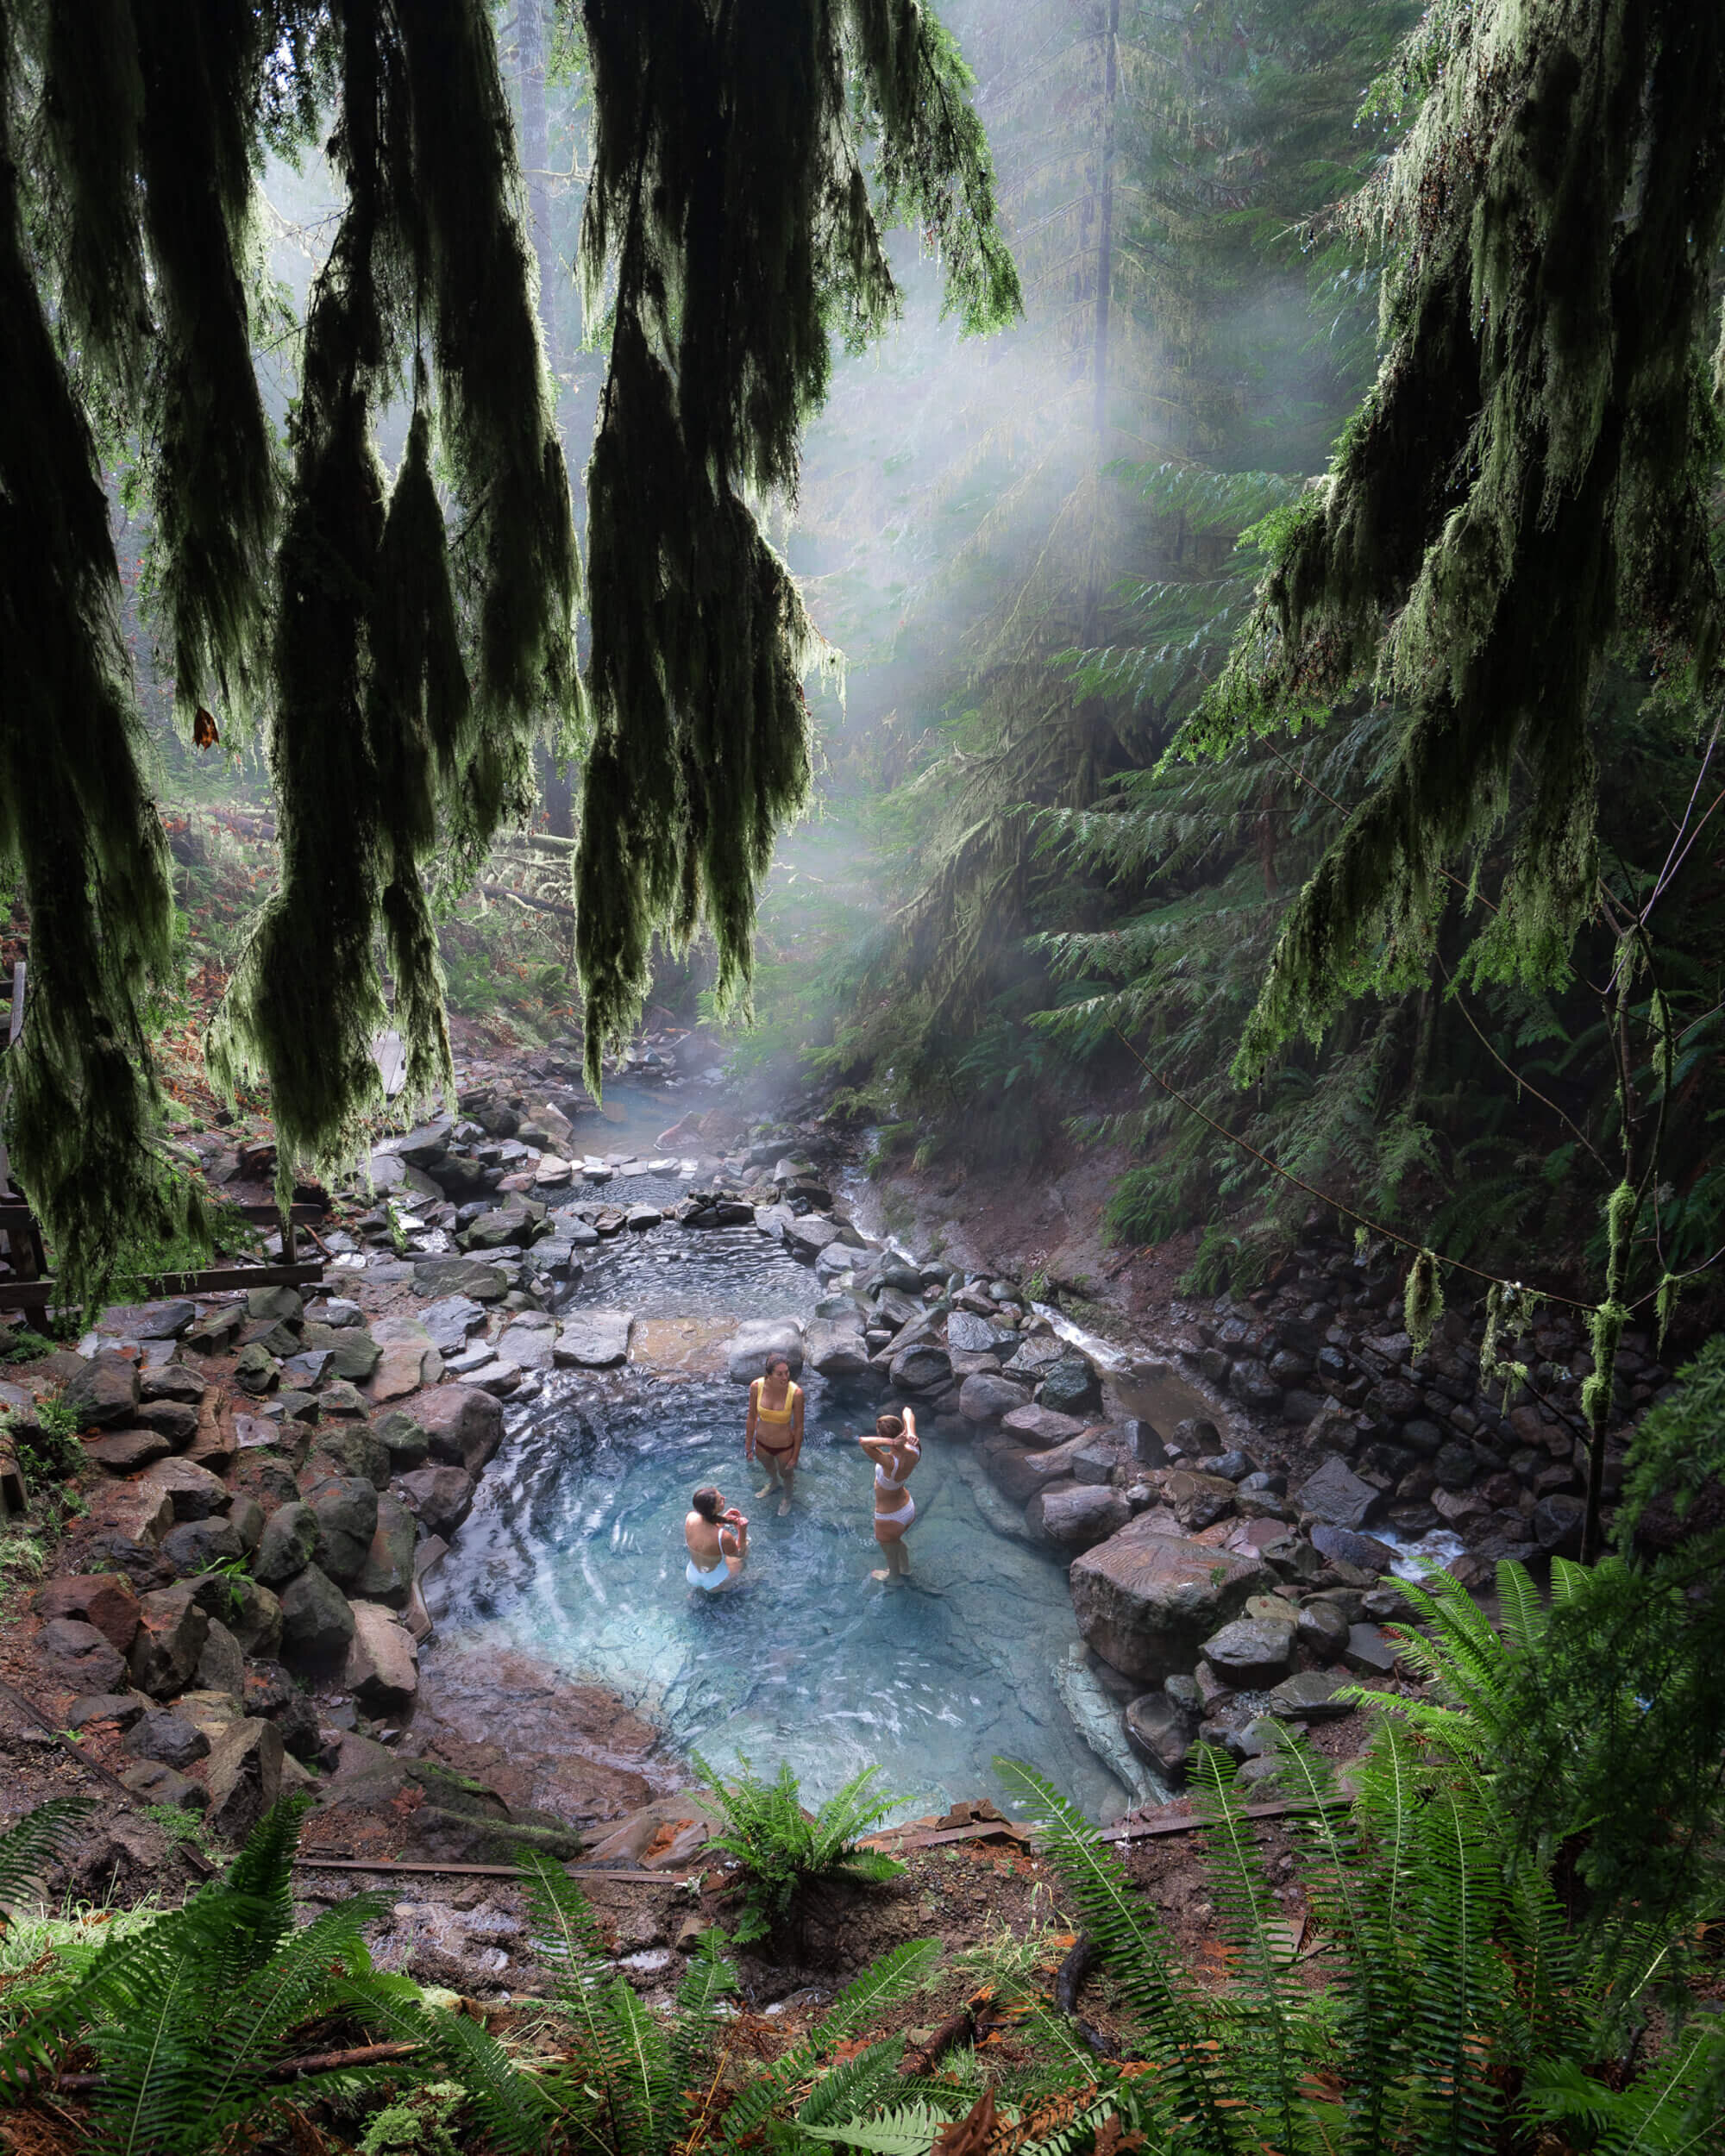 Ringing in the New Year at Cougar Hot Springs in Oregon.